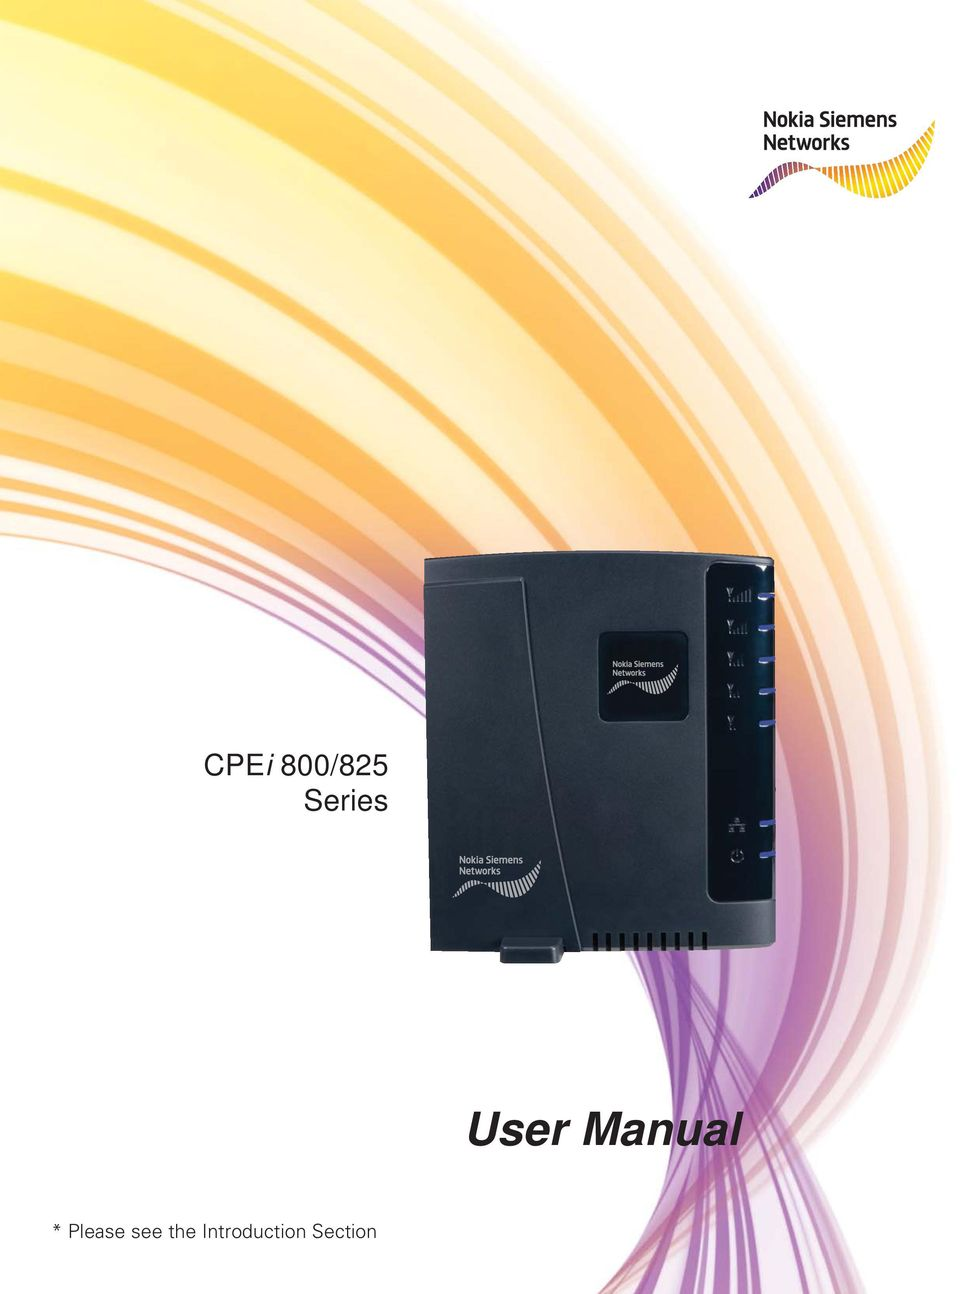 Manual * Please